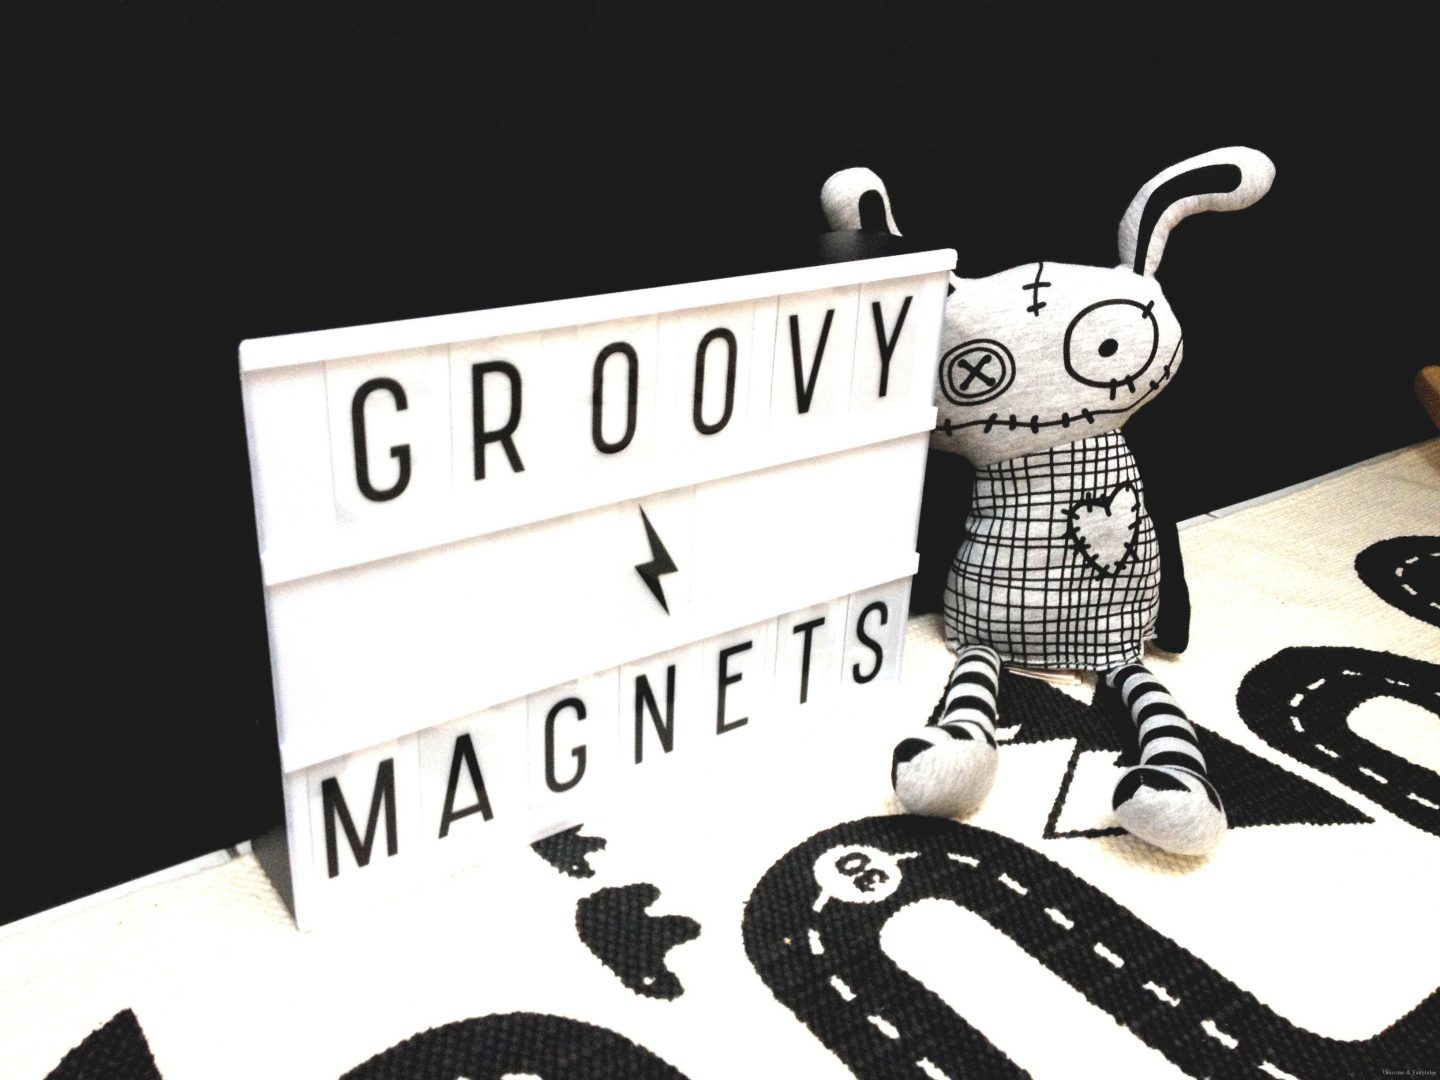 groovymagnets1 - Groovy Magnets | webshoptip (+WIN)